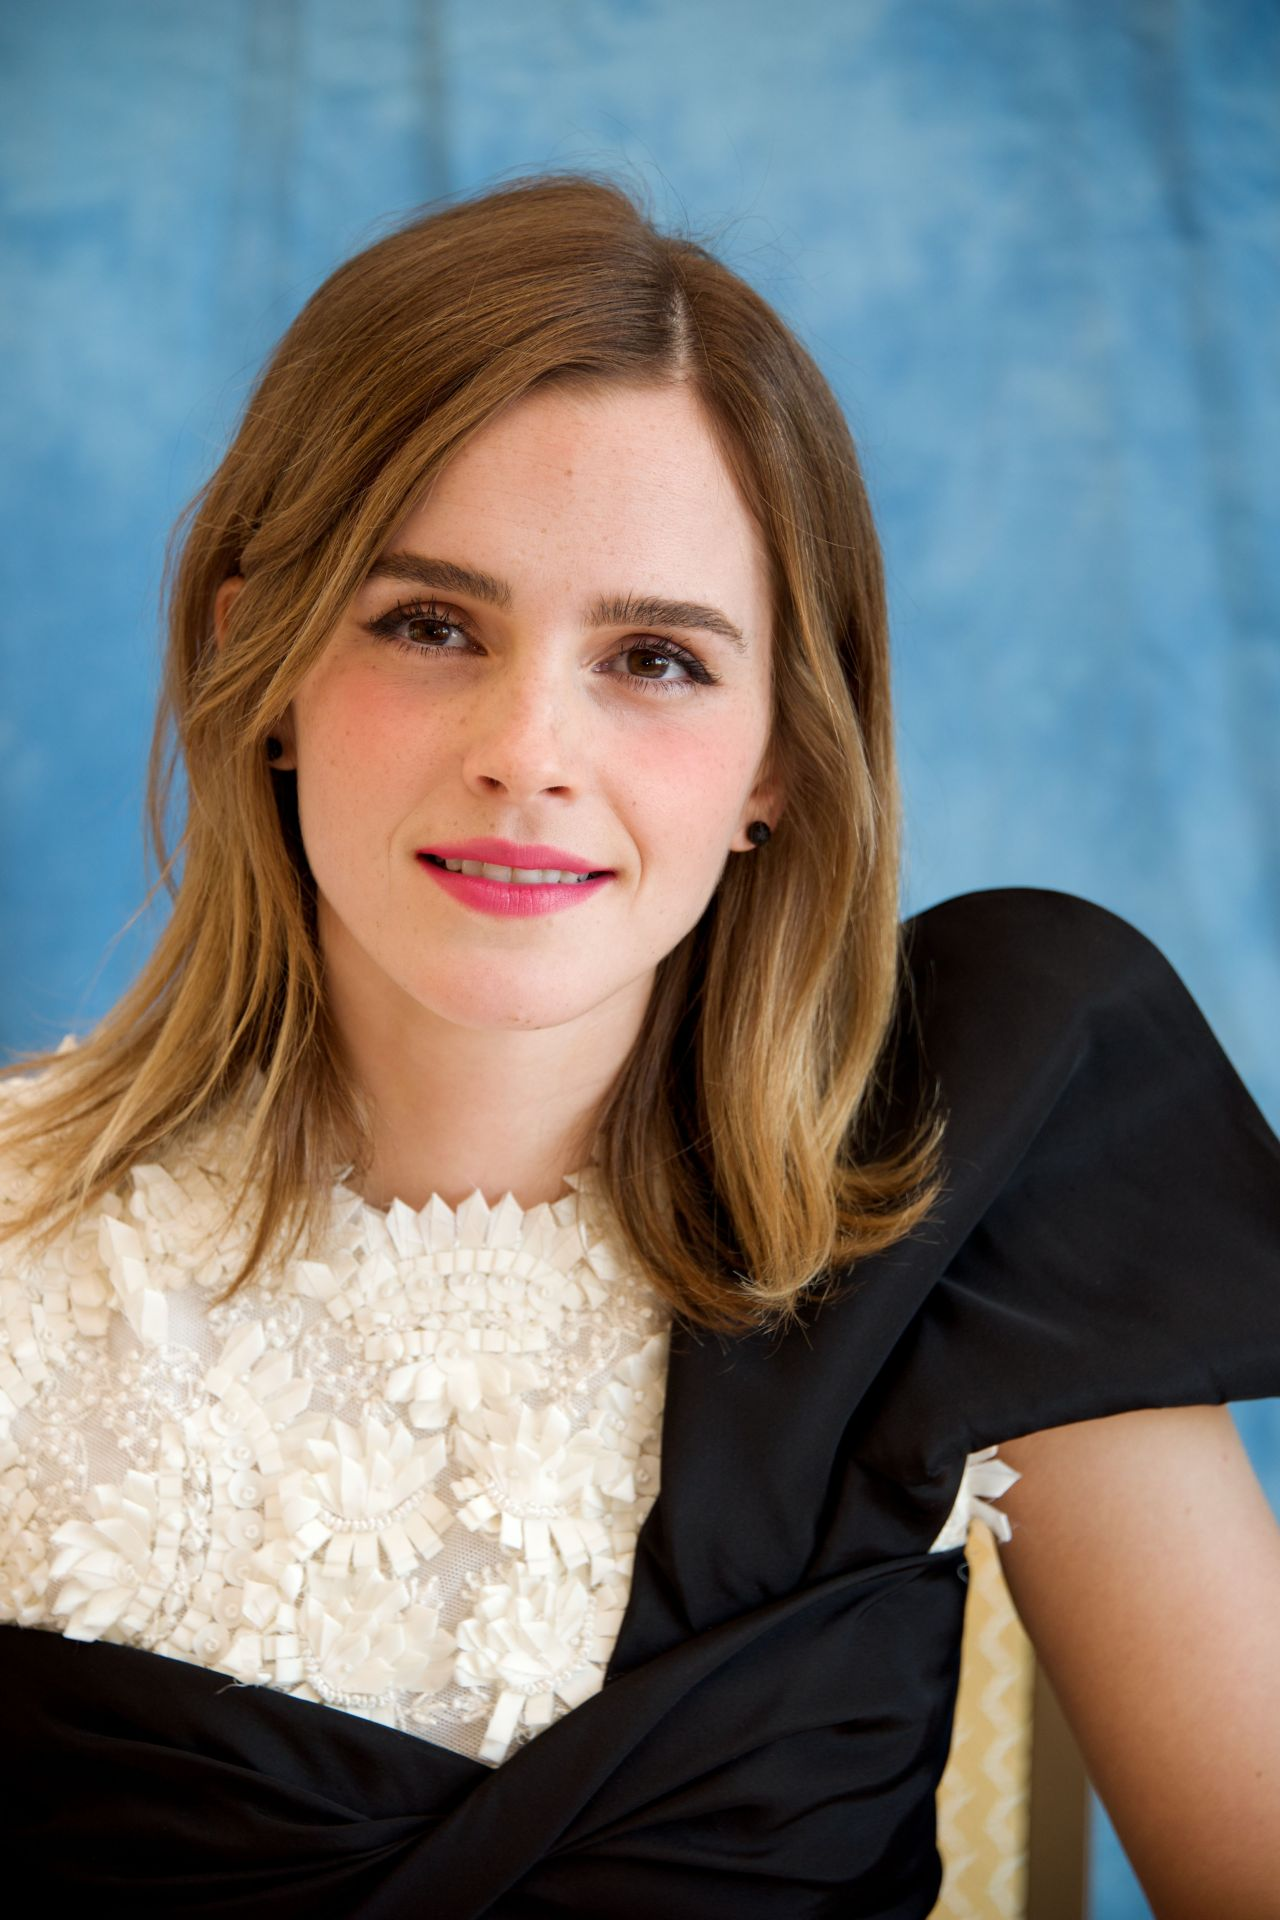 emma-watson-beauty-and-the-beast-press-conference-at-the-montage-hotel-in-beverly-hills-3-5-2017-4.jpg